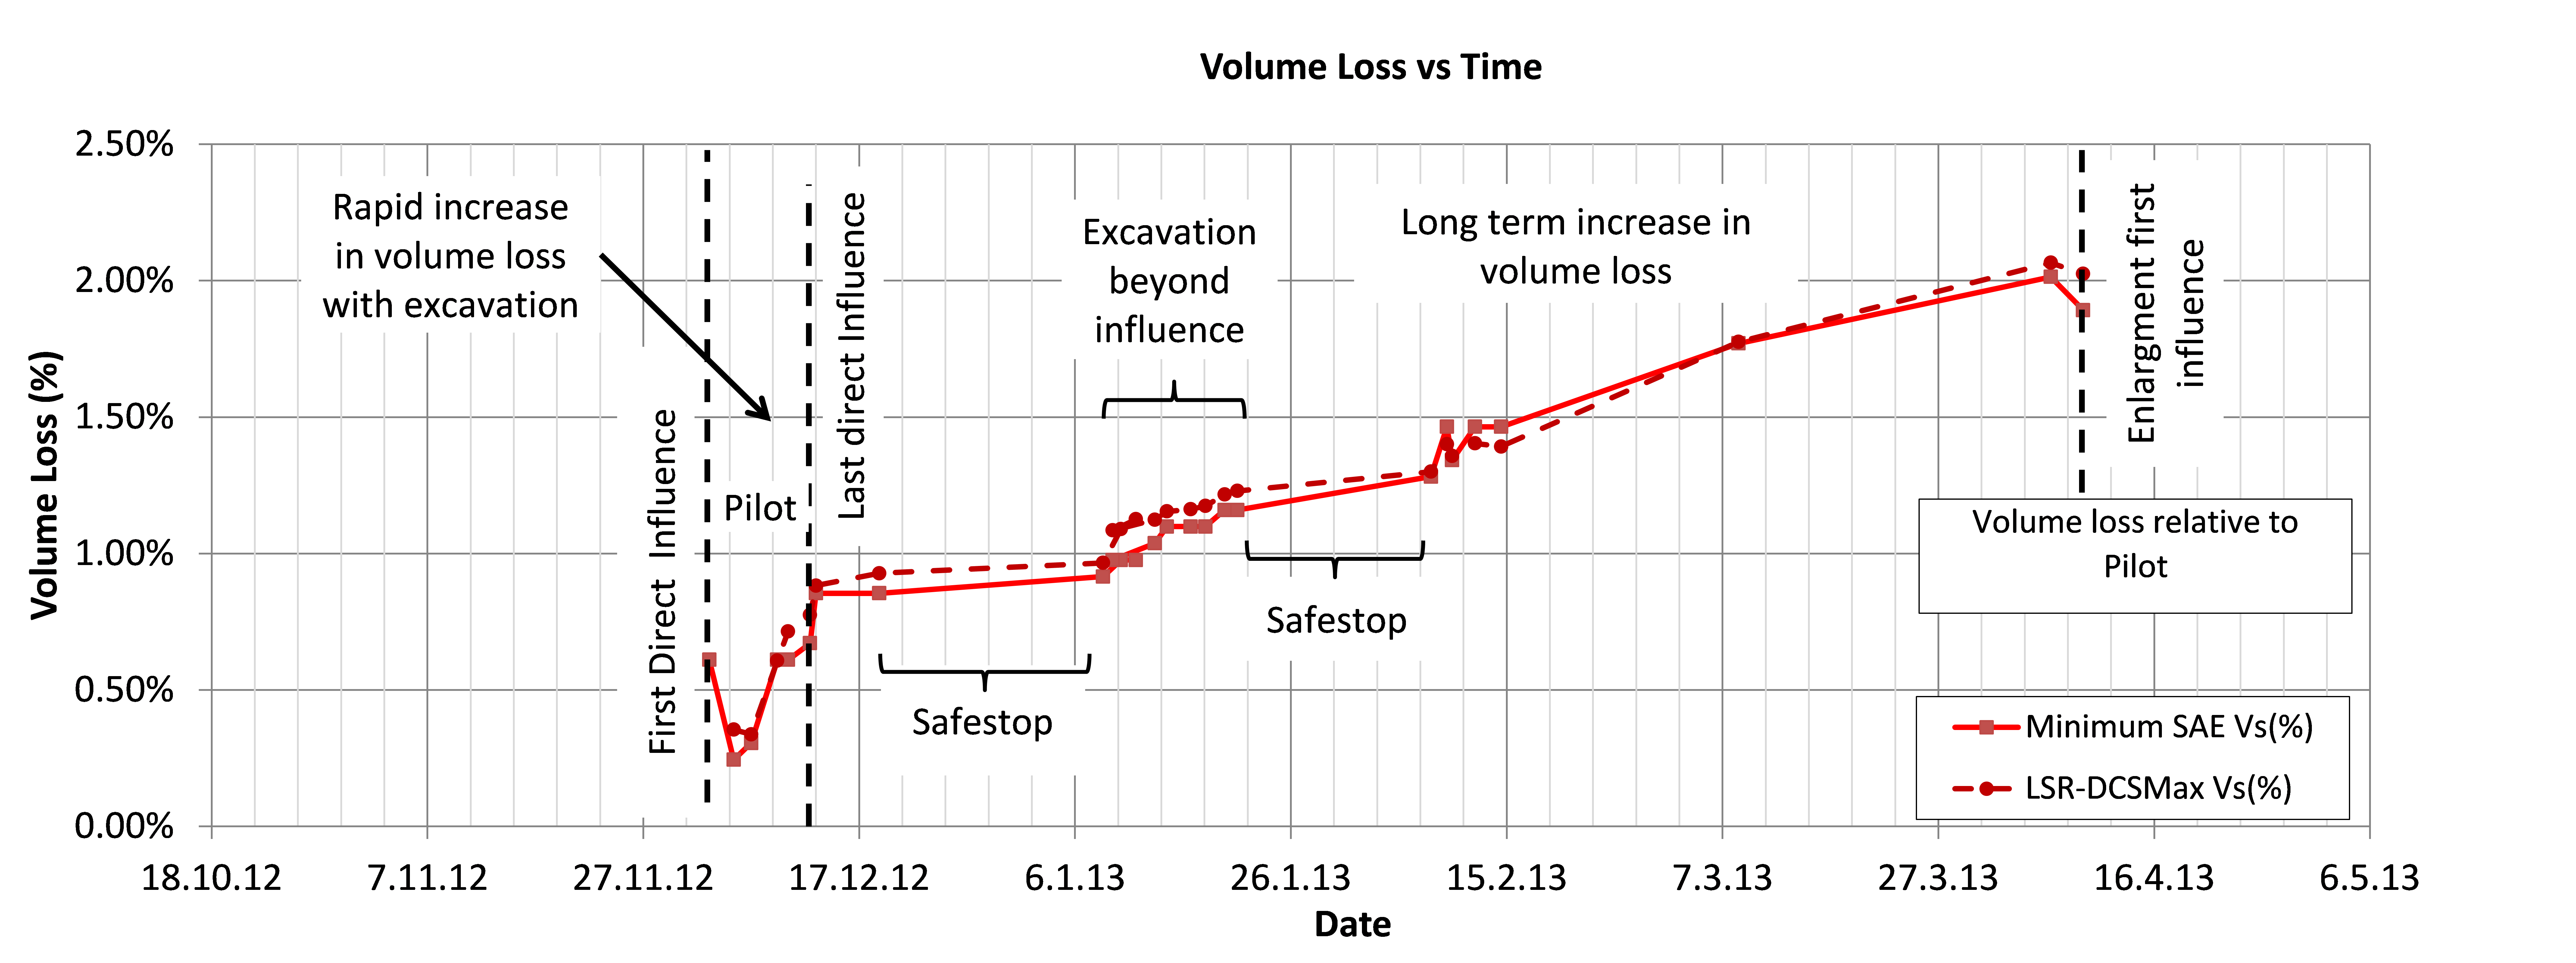 Figure 20 - Long term volume loss after the pilot tunnel excavation